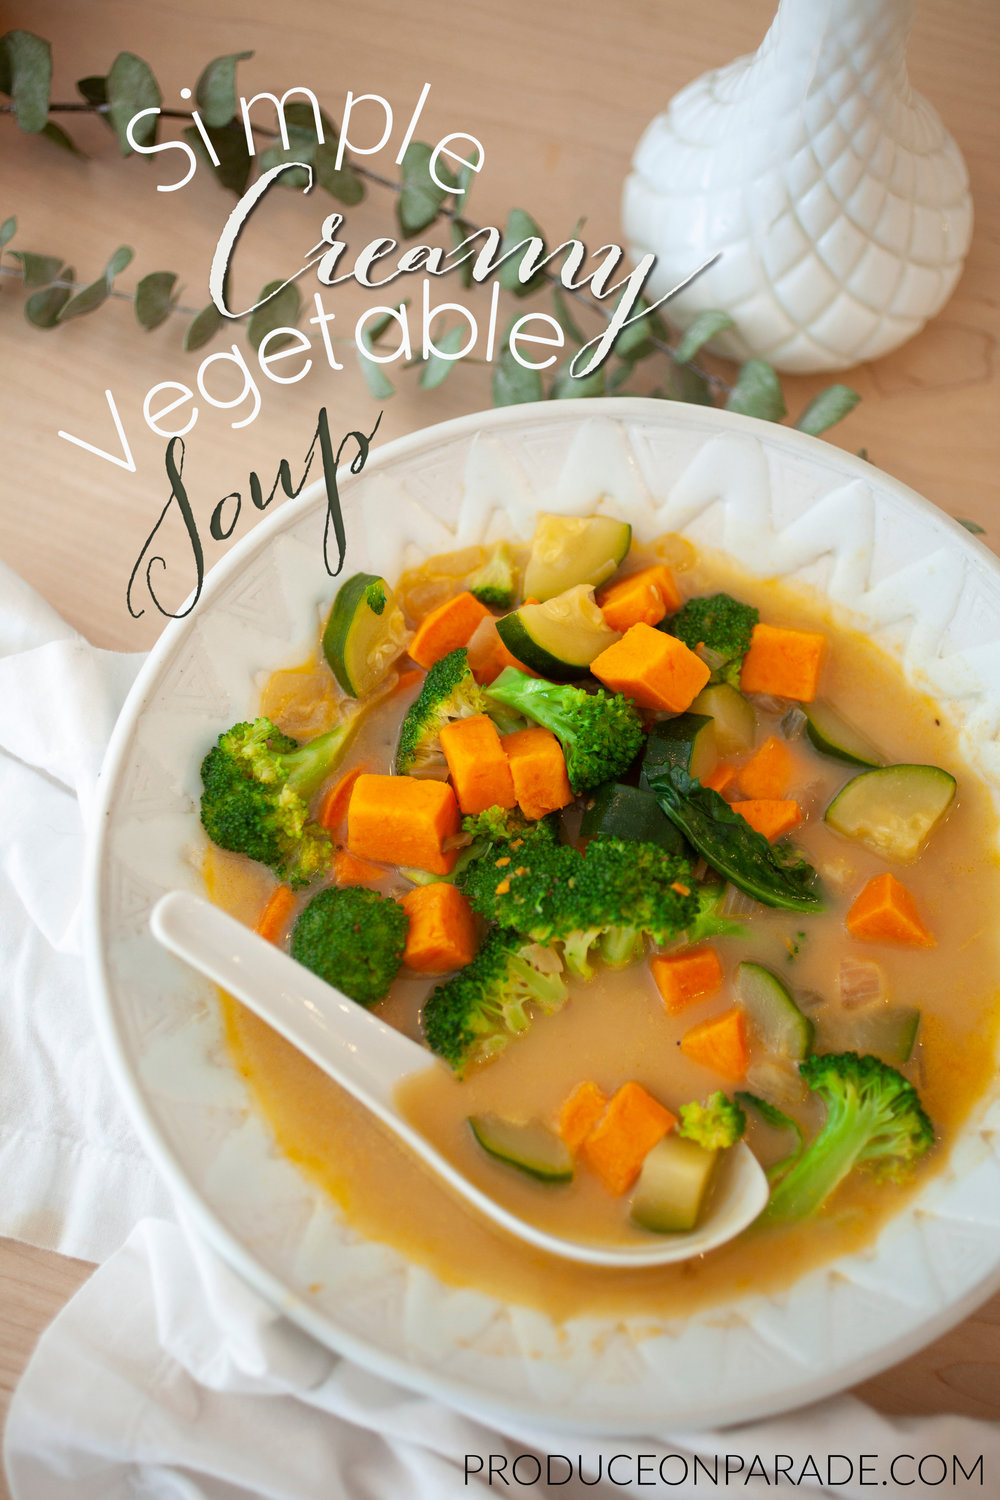 Produce On Parade - Simple Creamy Vegetable Soup - This is a wonderfully simple and delectable soup. Chunks of hearty sweet potato, zucchini, and broccoli swim in a flavorful, creamy broth for a quick and healthy meal that's great for a weeknight. This really is a new favorite meal that's a great way to use up any leftover canned coconut milk in your fridge.